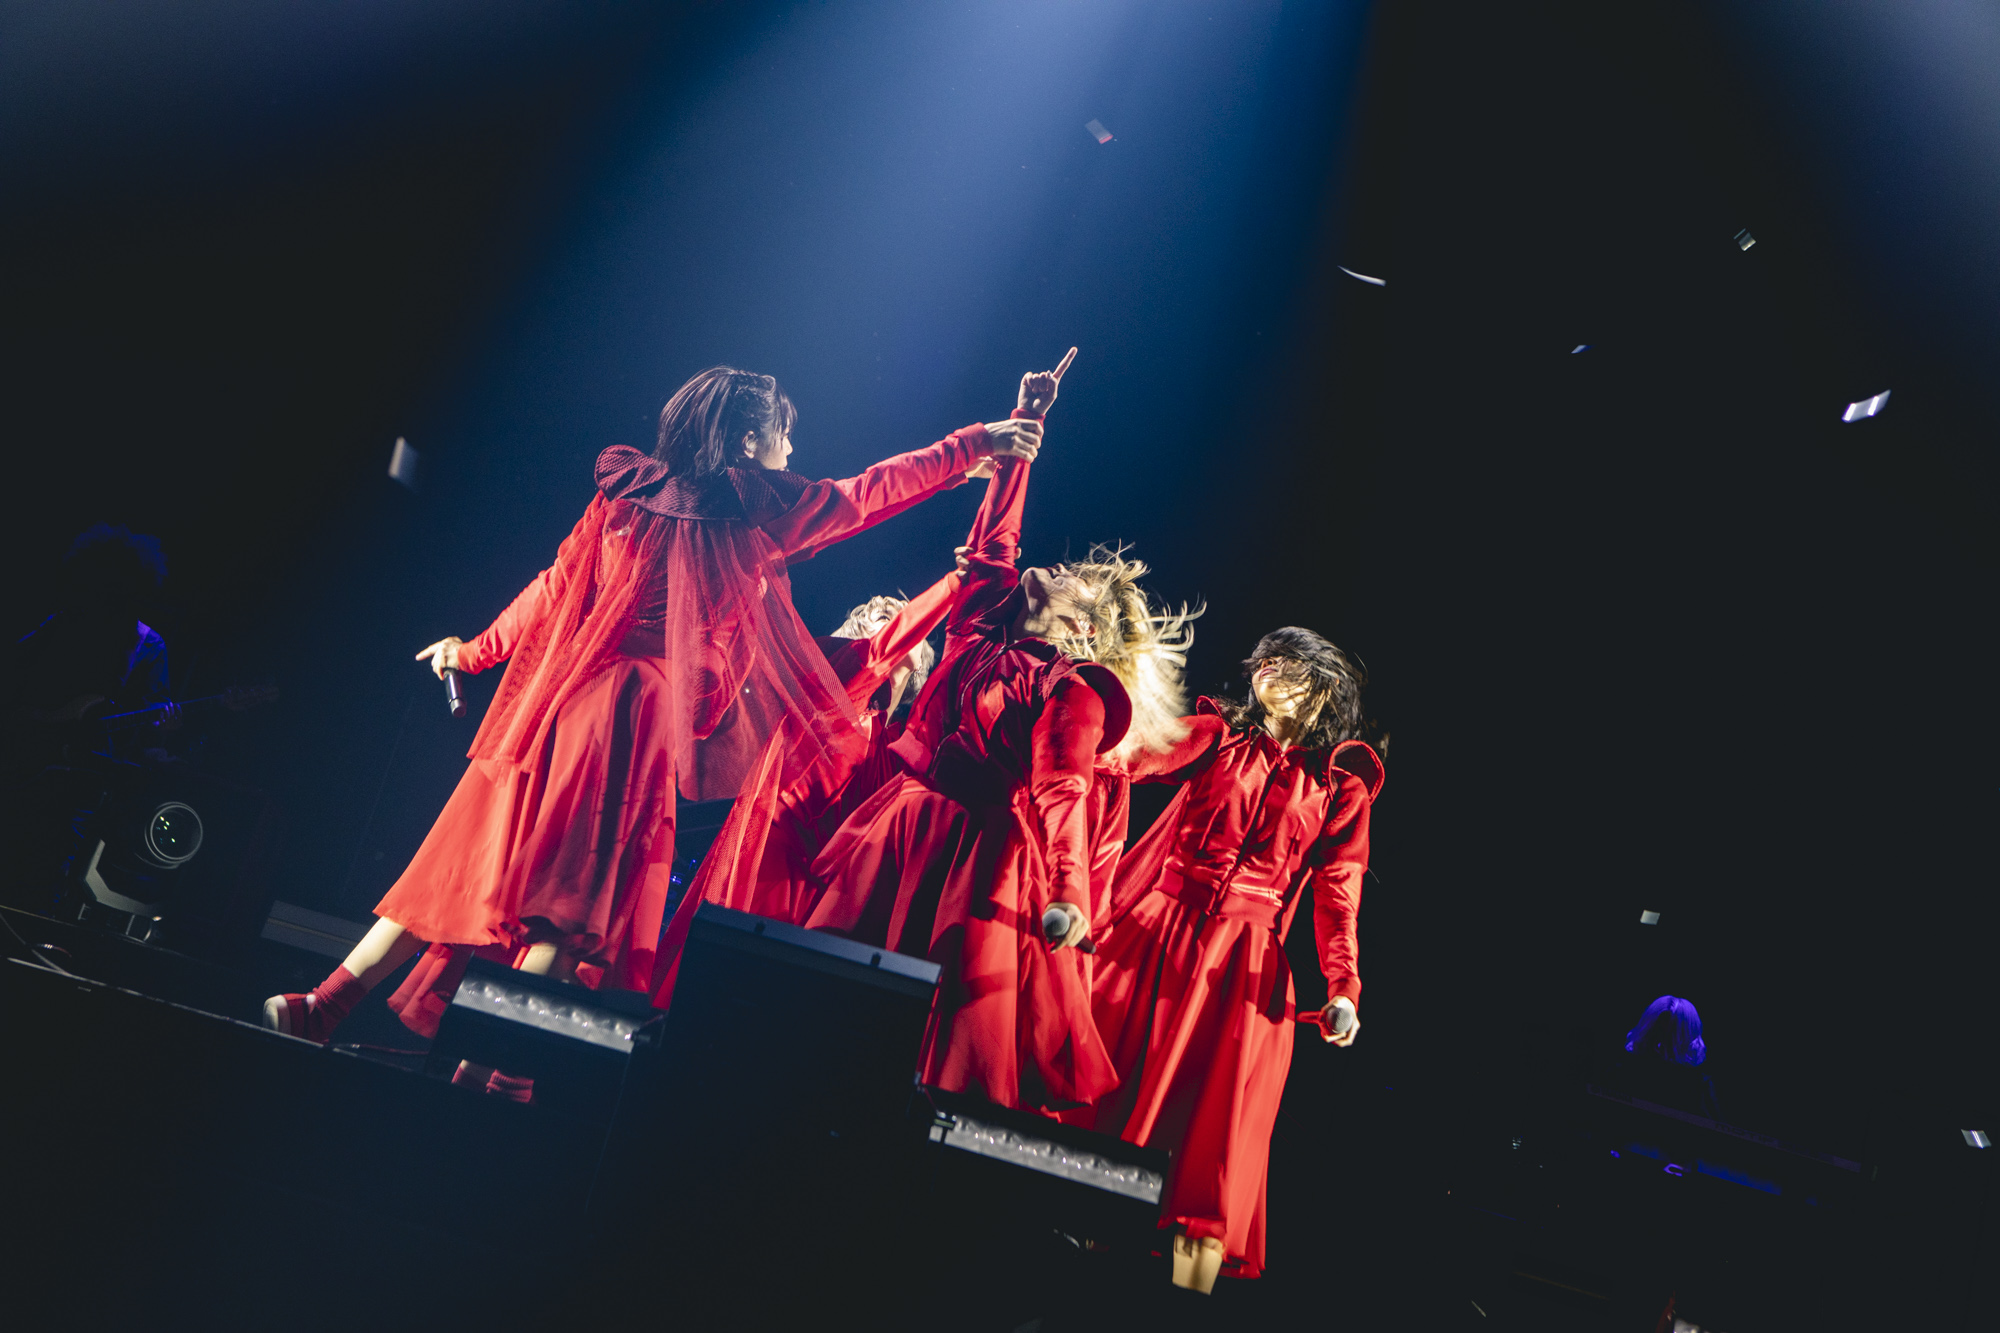 BiSH BRiNG iCiNG SHiT HORSE TOUR FiNAL『THE NUDE』LIVE LIVE